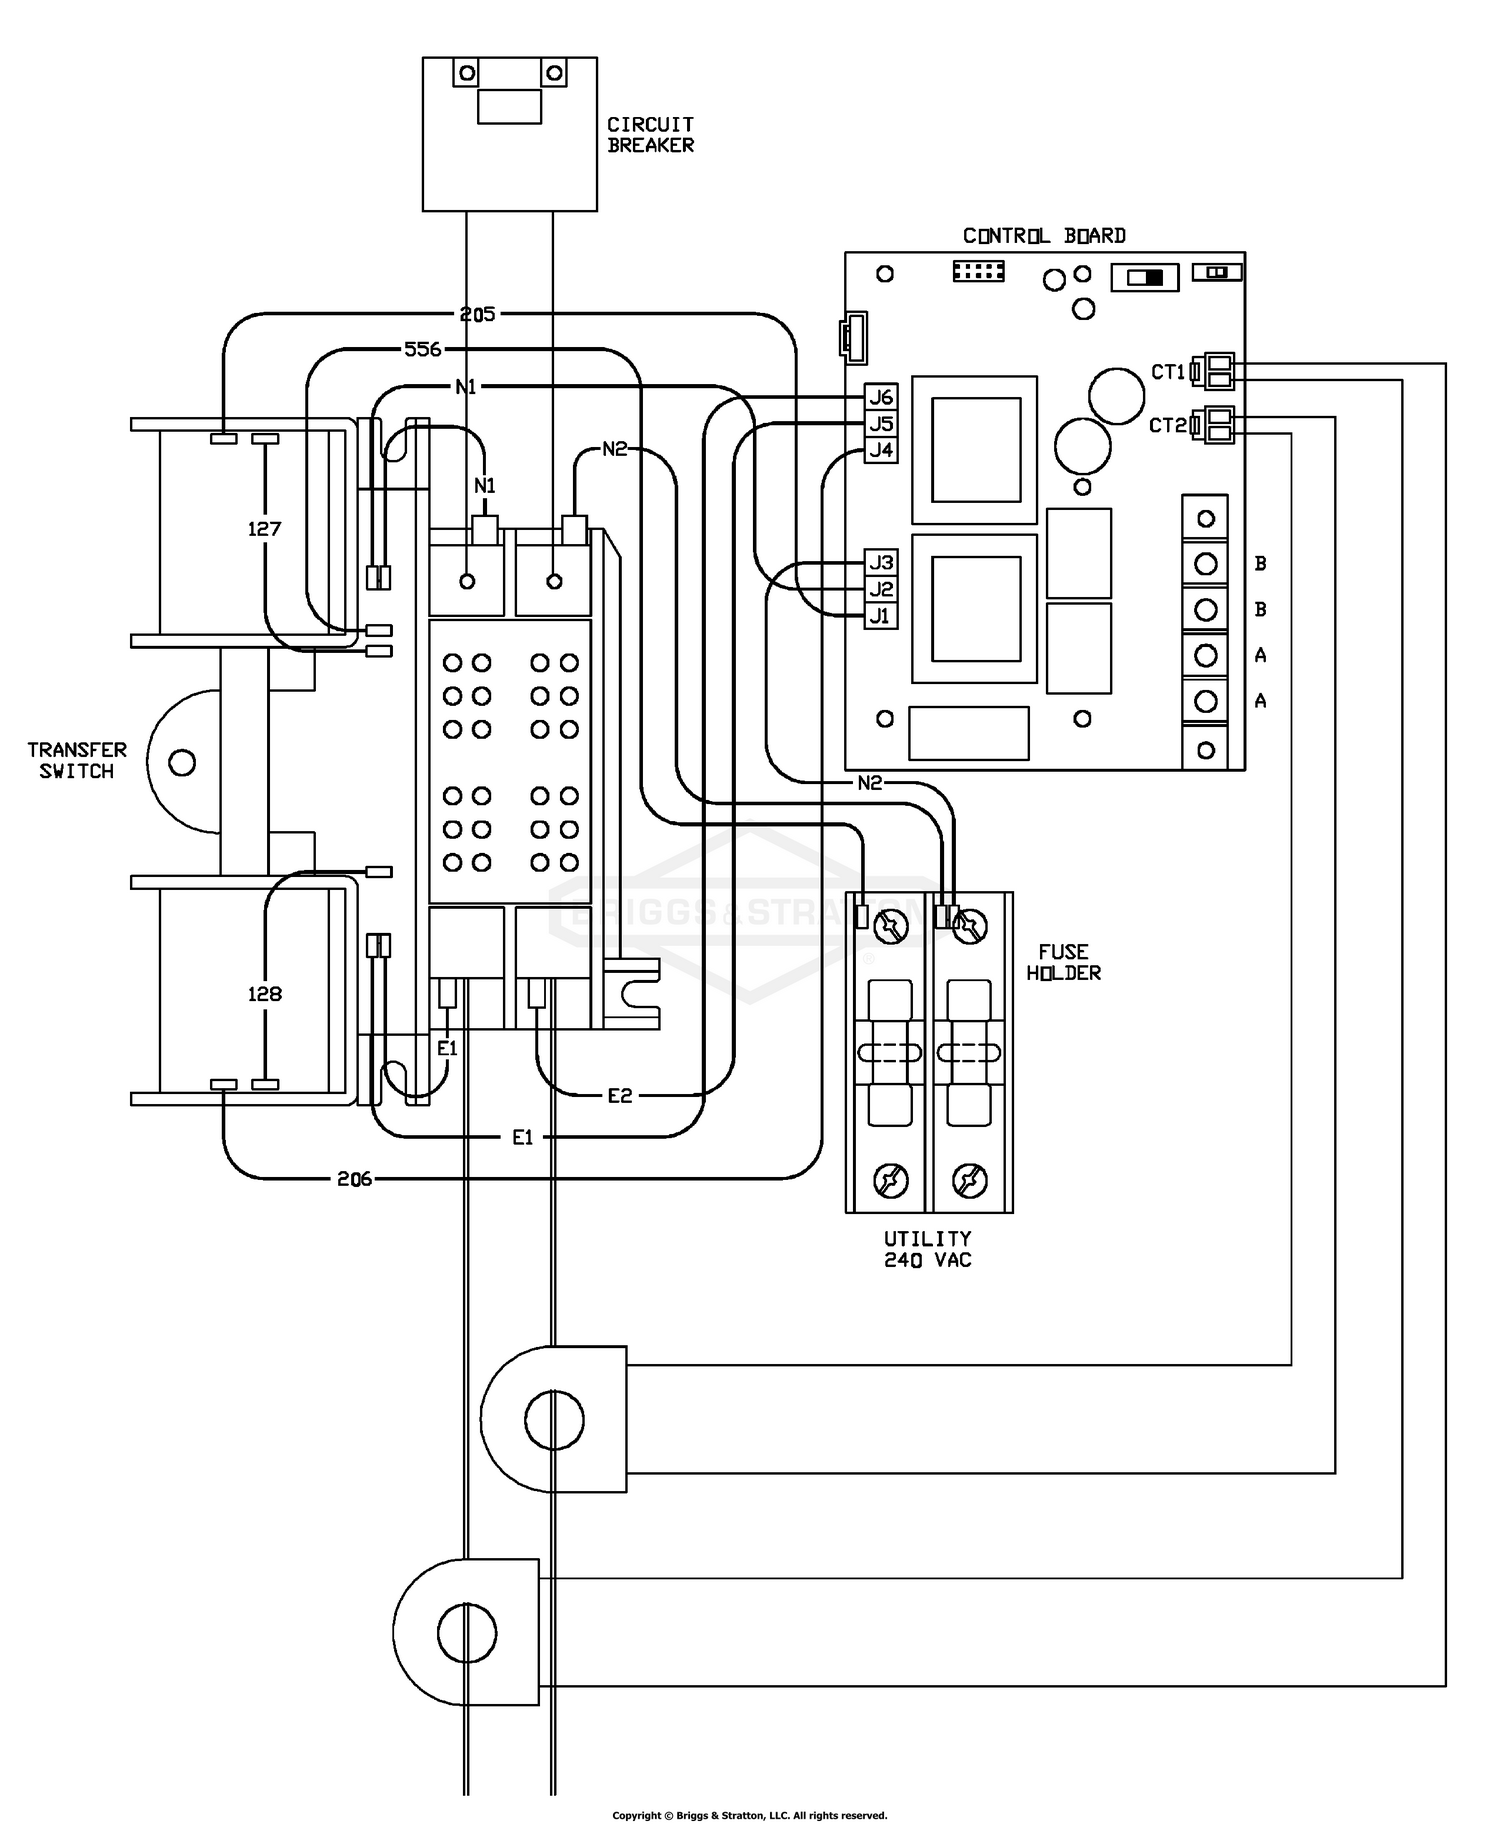 Briggs Amp Stratton Power Products Del 26072017021729 071011 1 Utica Wiring Diagram Transfer Switch